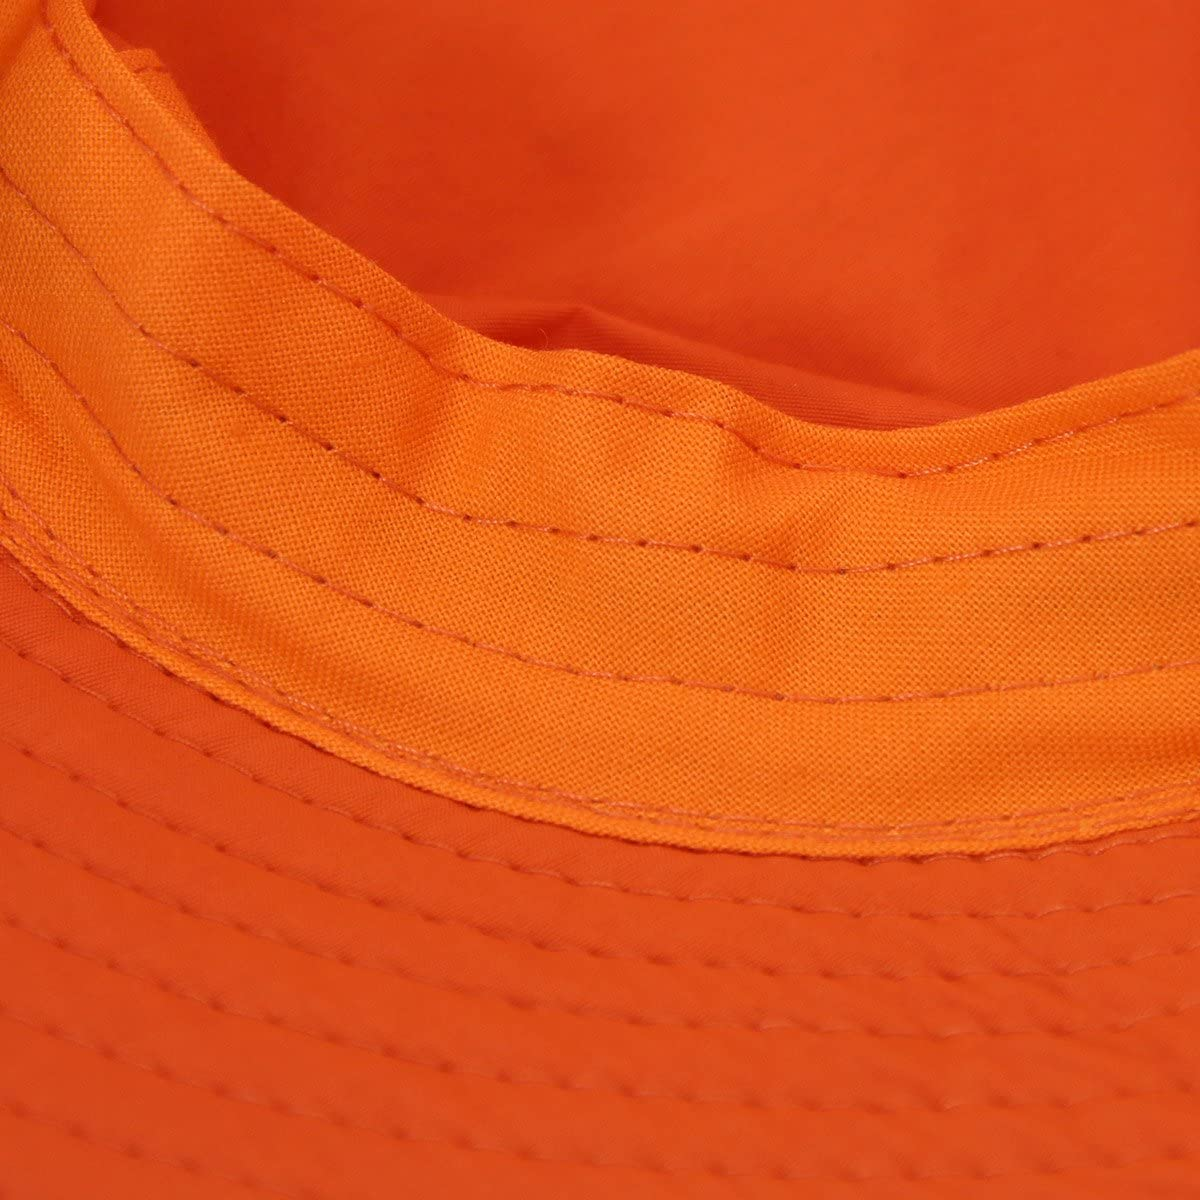 Home Prefer Unisex Mens Womens Lightweight Breathable Daily Summer Boonie Hat Sun Protection Bucket Hat Outdoor Fishing Hat, Orange at  Women's Clothing store